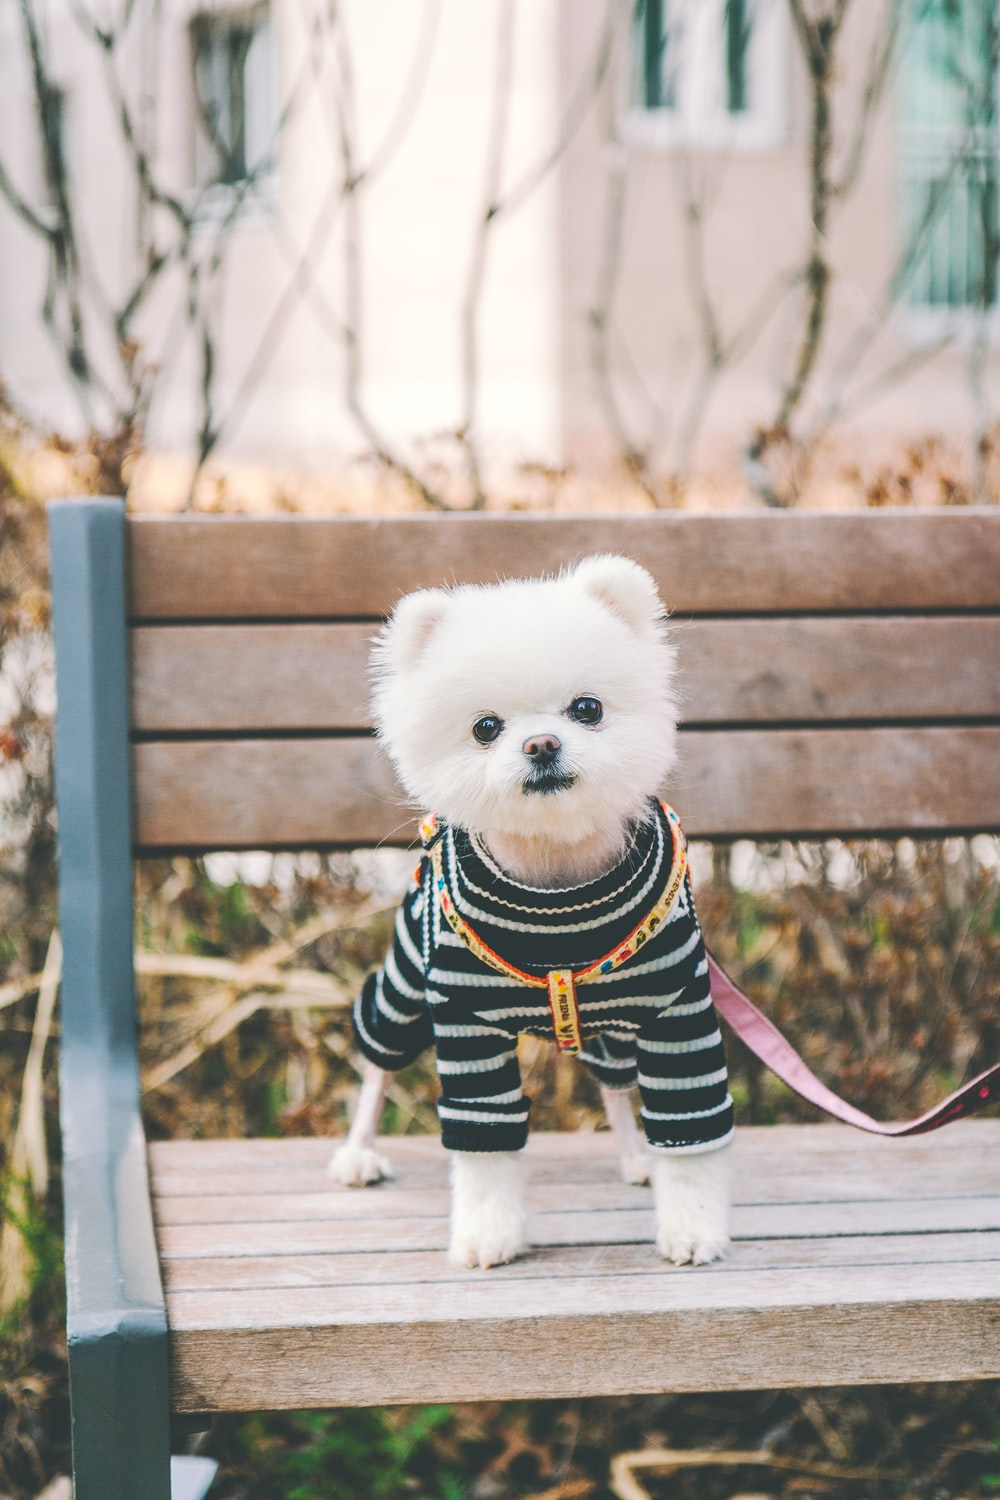 white puppy wearing black and white striped shirt standing on park bench